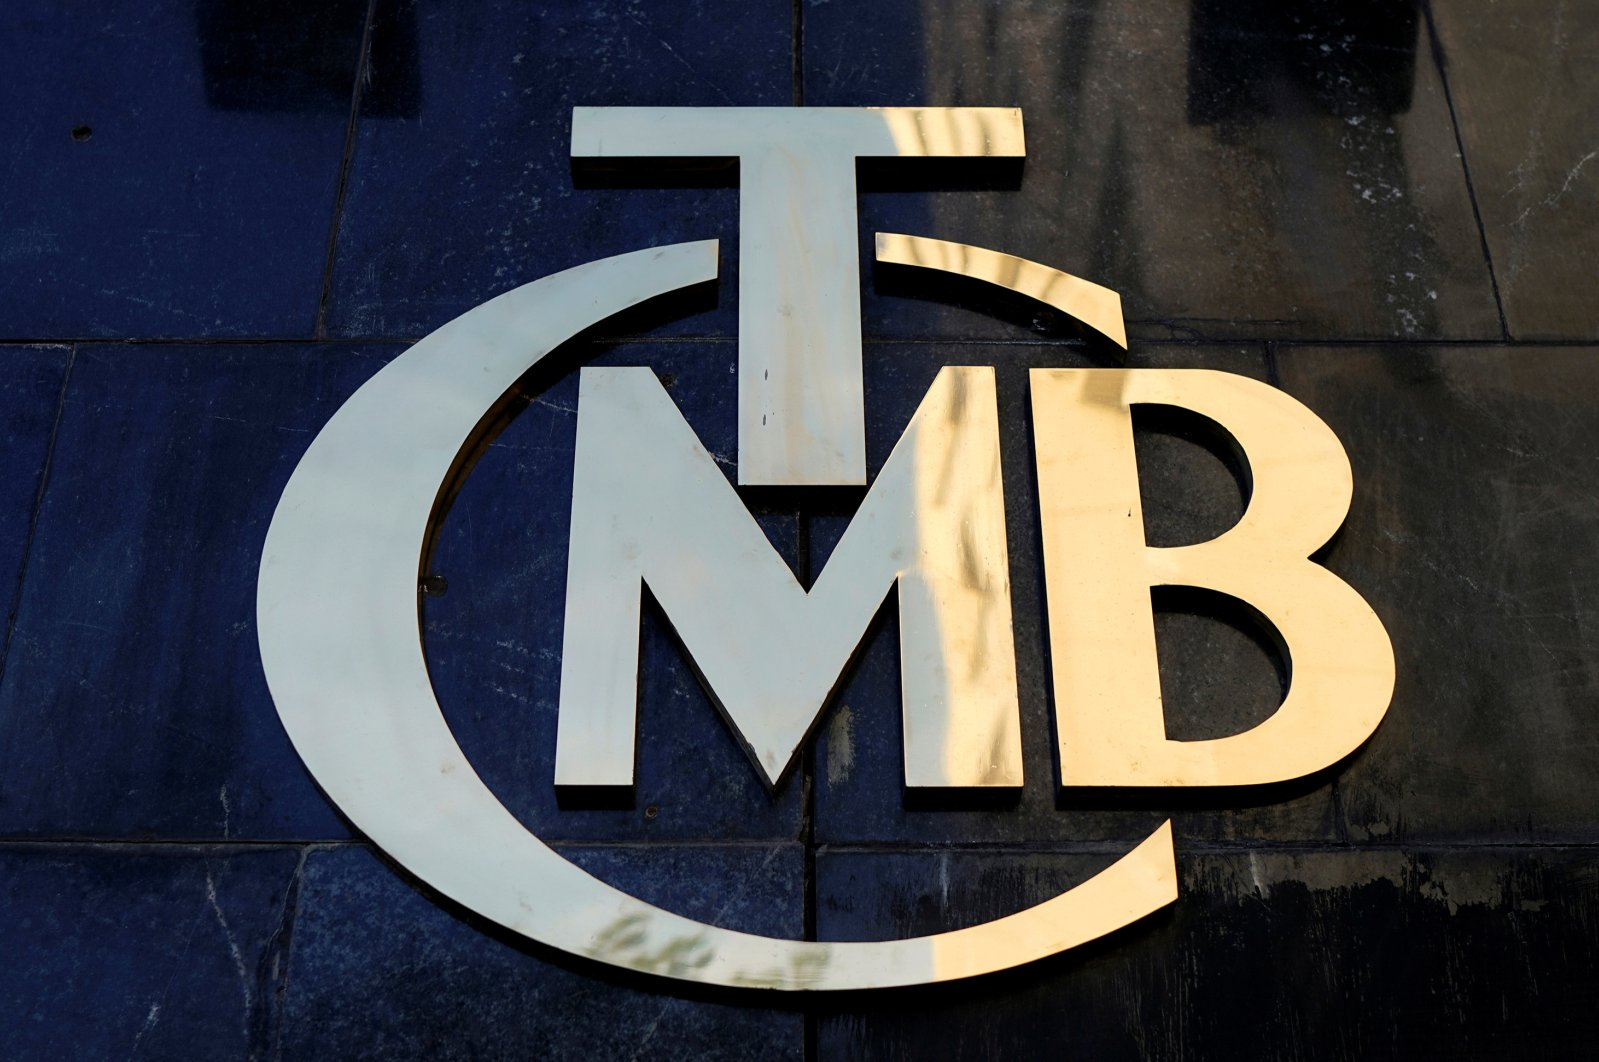 A logo of Turkey's Central Bank is pictured at the entrance of the bank's headquarters in Ankara, Turkey, April 19, 2015. (Reuters Photo)